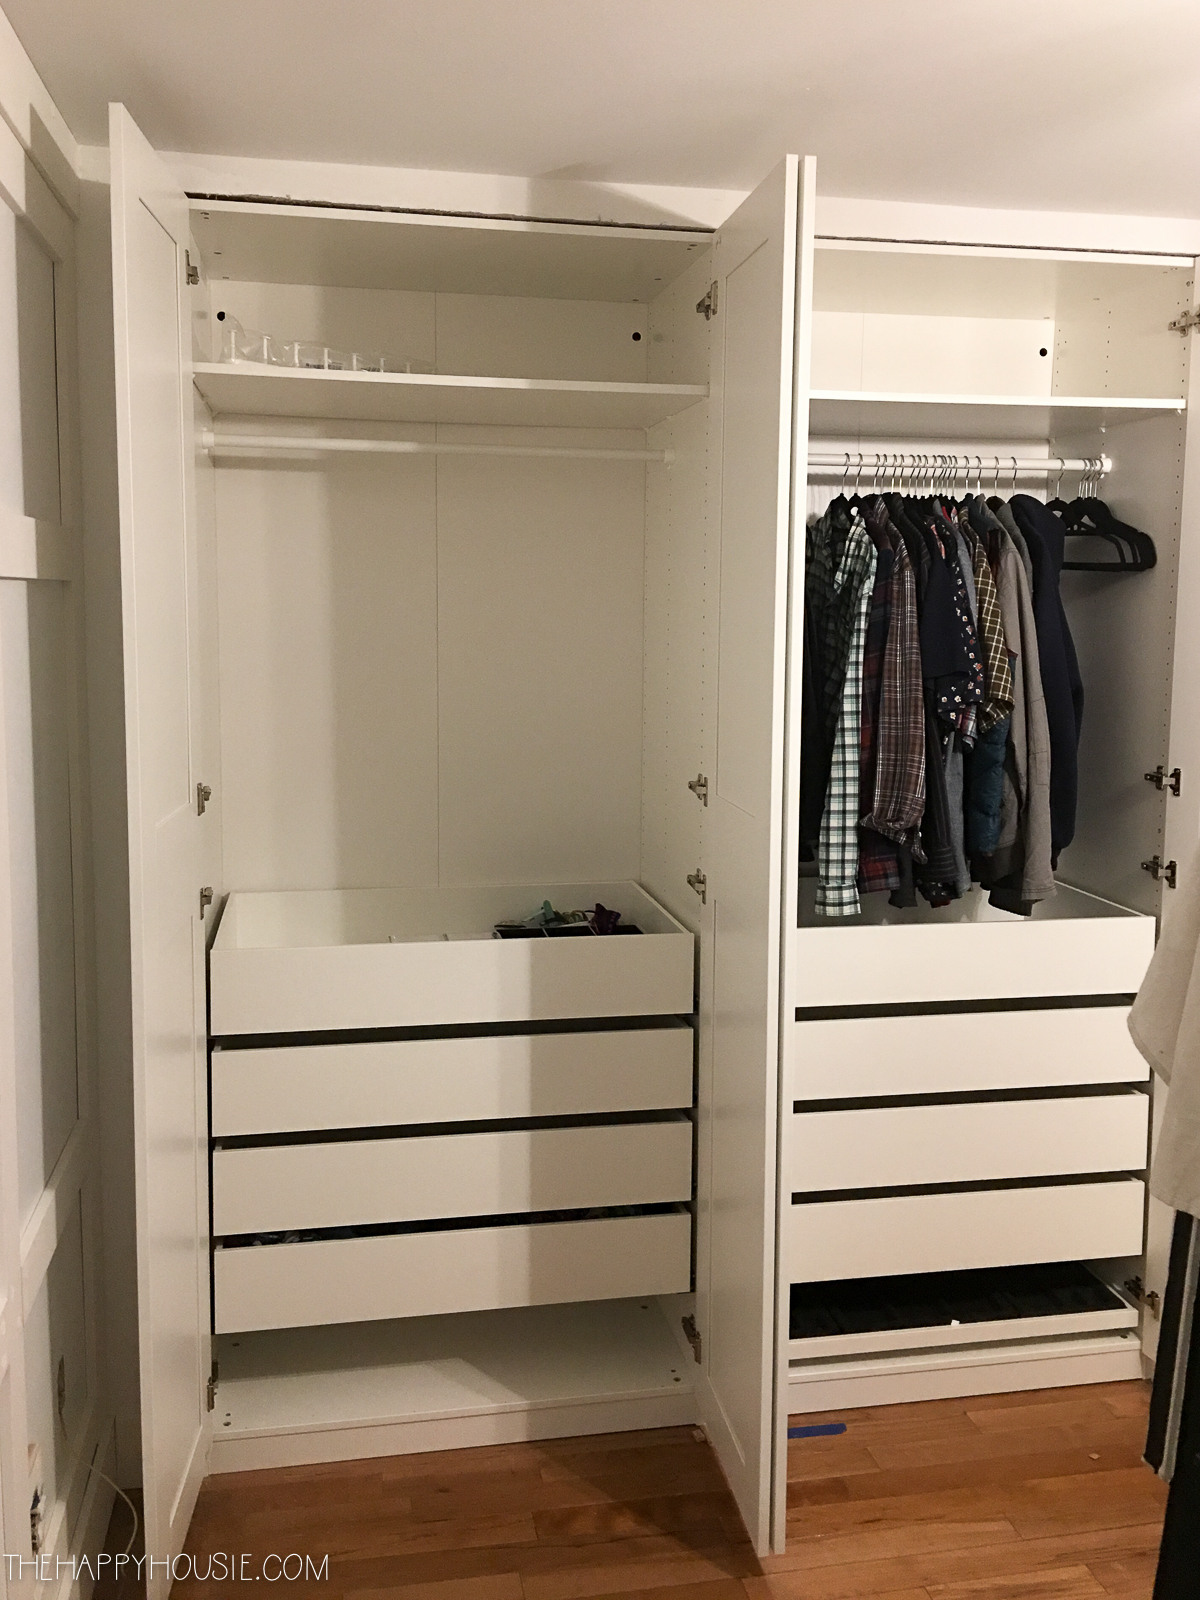 Ikea Wardrobe Tidy Diy An Organized Closet Big Or Small With The Ikea Pax